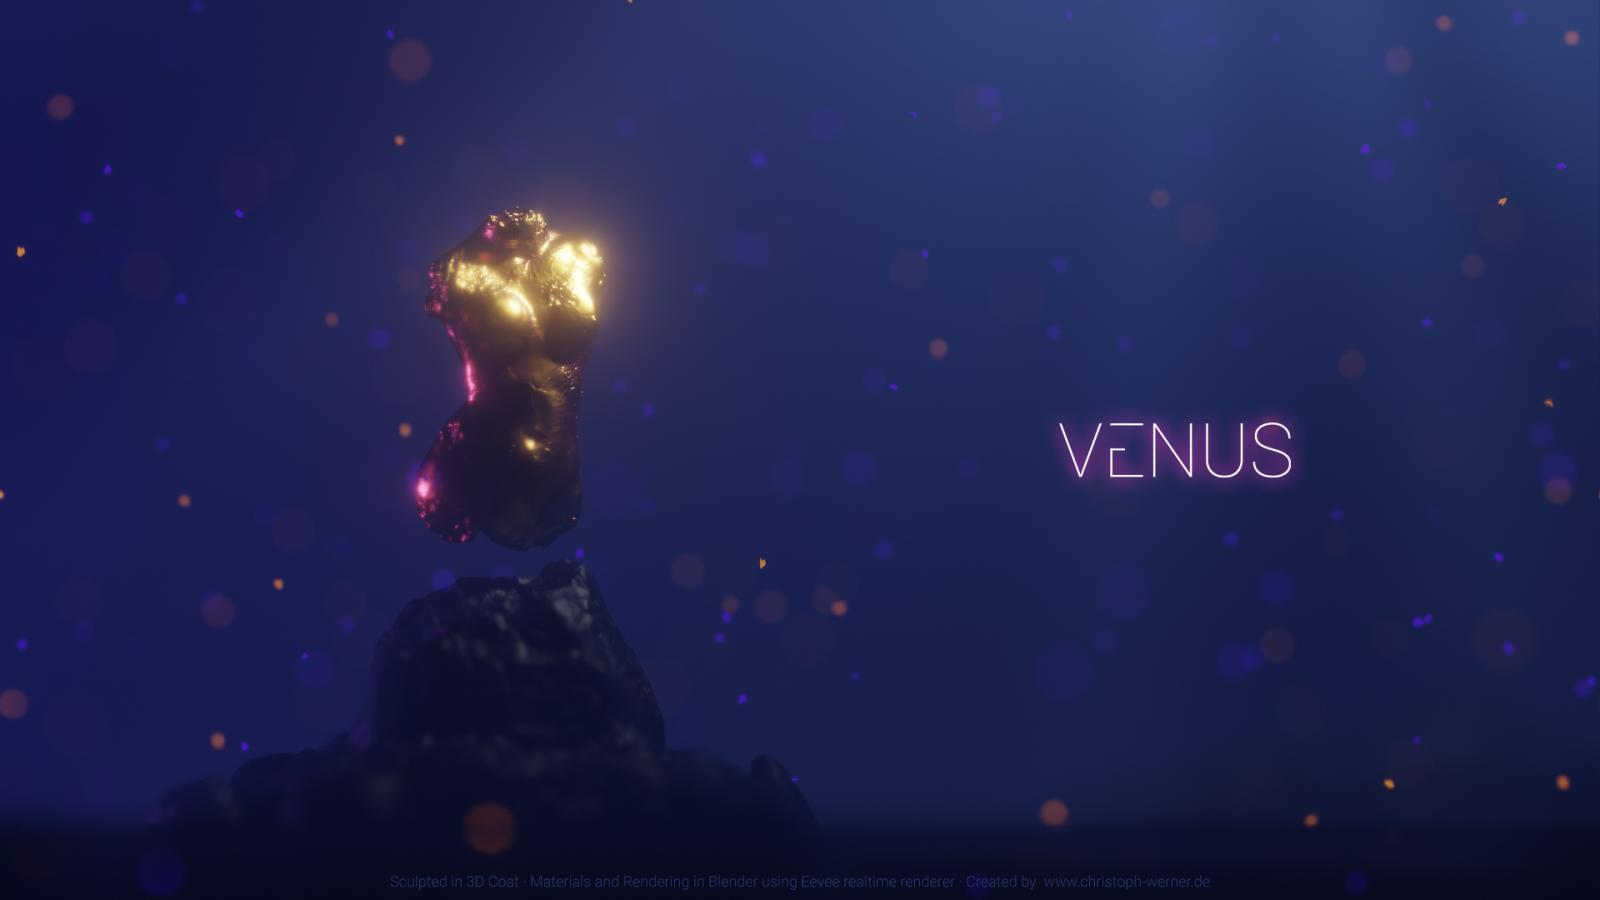 Venus - Rendered in Blender (Eevee)